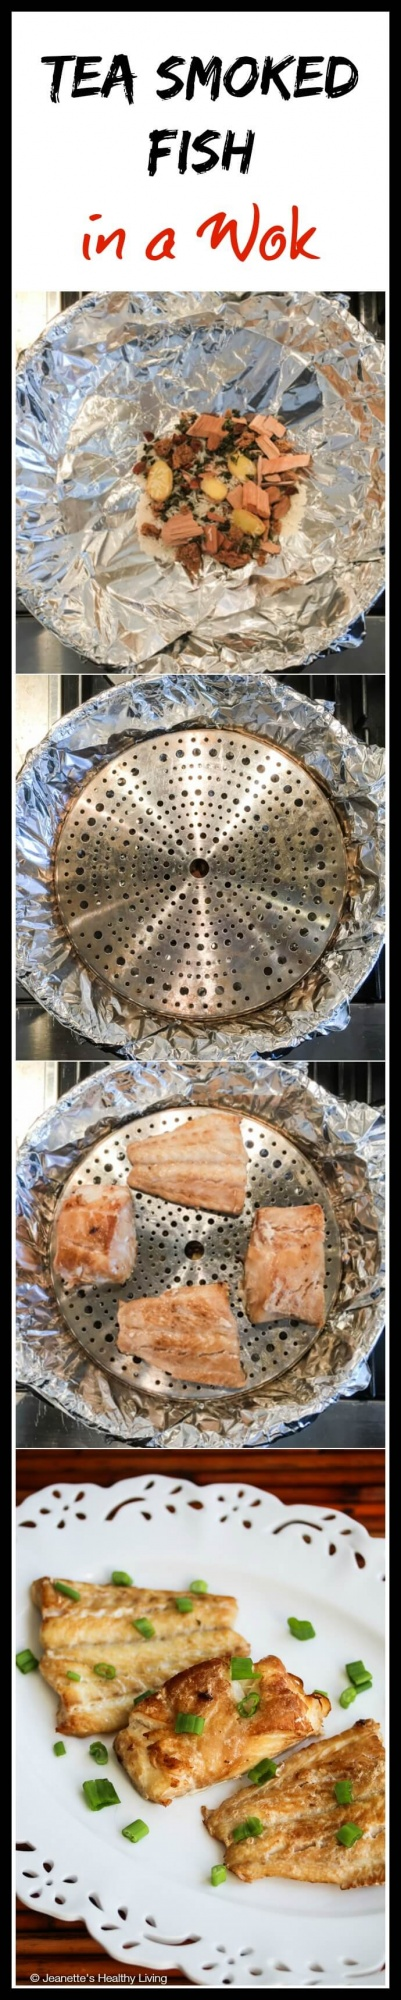 Tea Smoked Fish in a Wok - this post shows how easy it is to smoke fish at home - no need for an expensive smoker